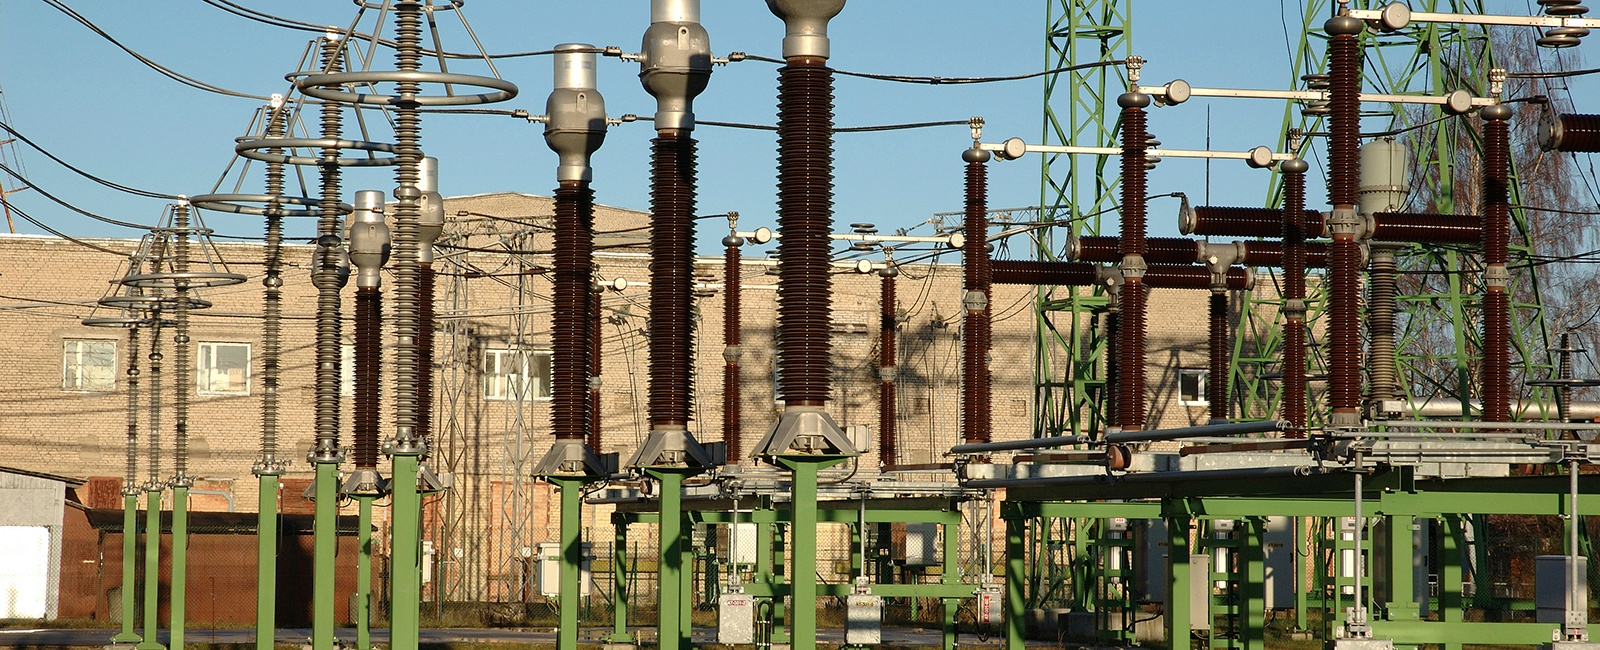 cost effective industrial wireless communication for smart grids